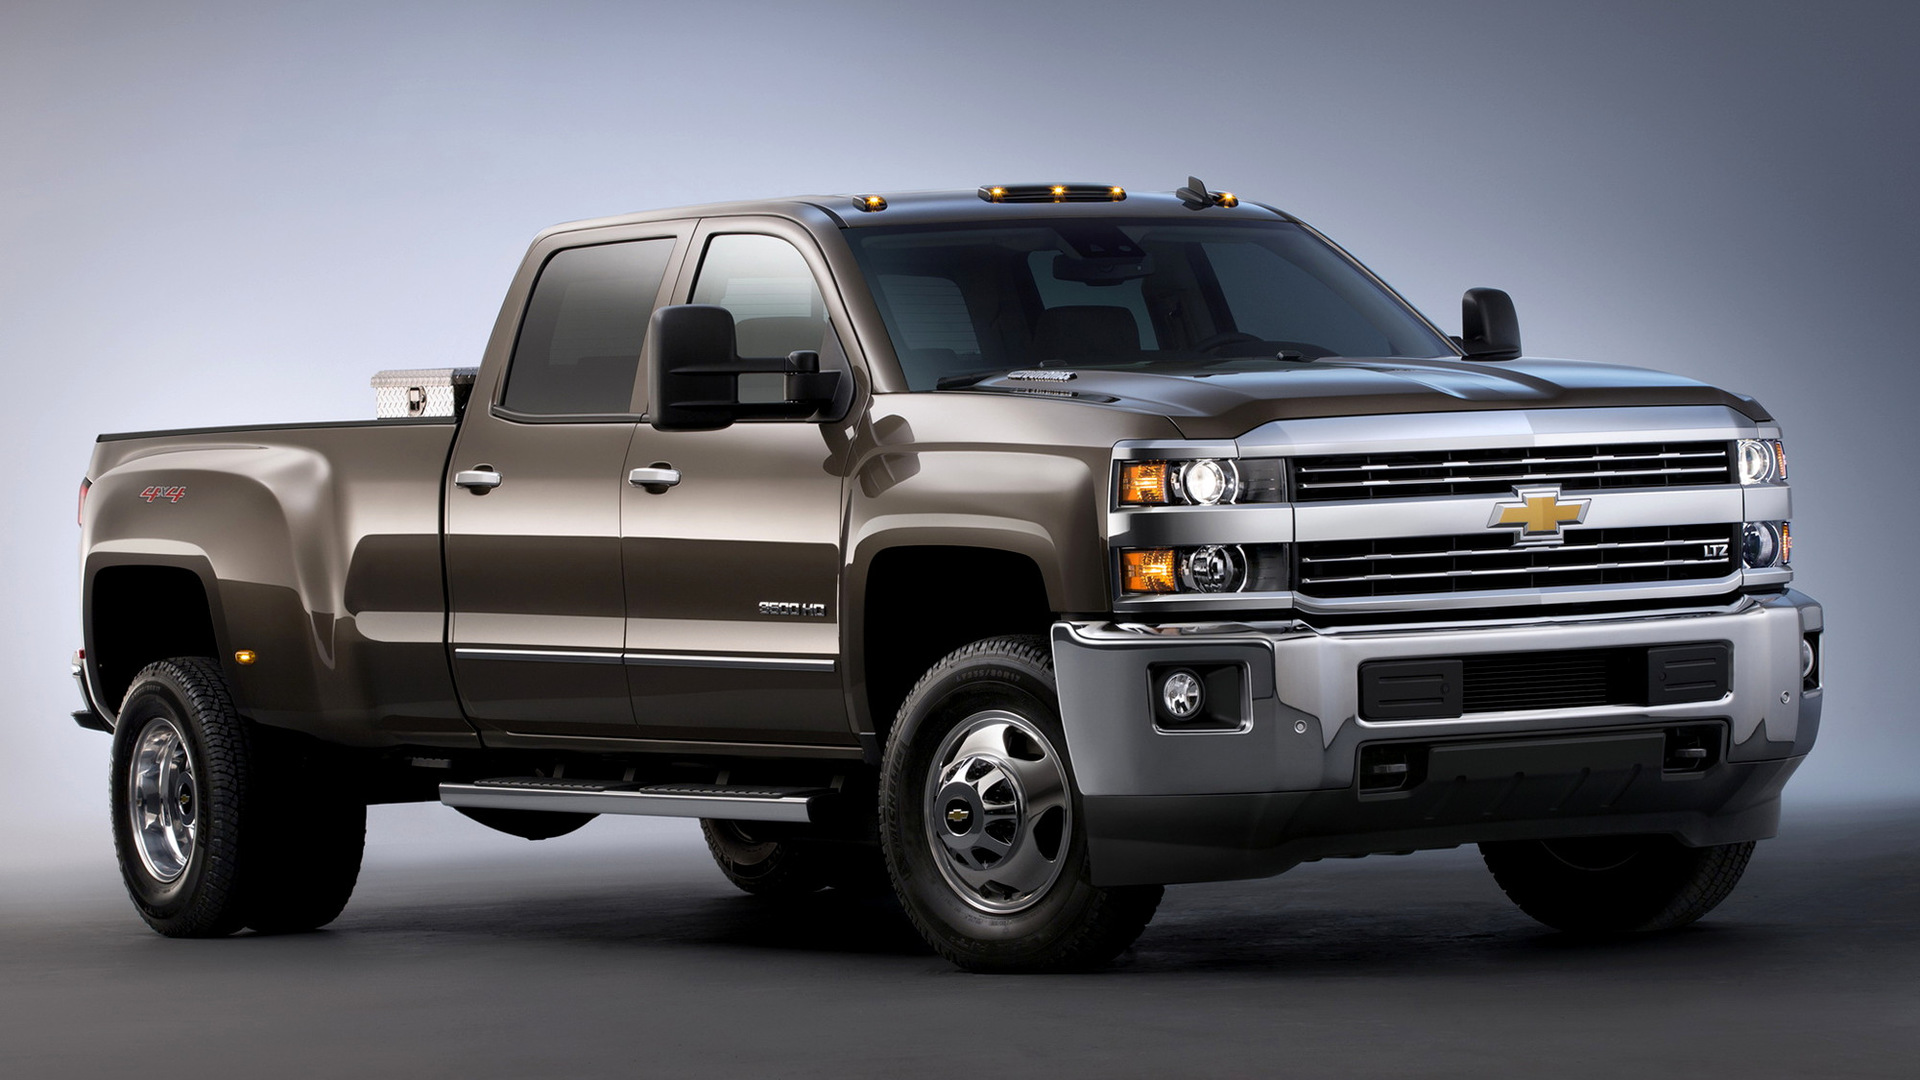 Chevrolet Silverado 3500 HD LTZ Crew Cab (2015) Wallpapers ...